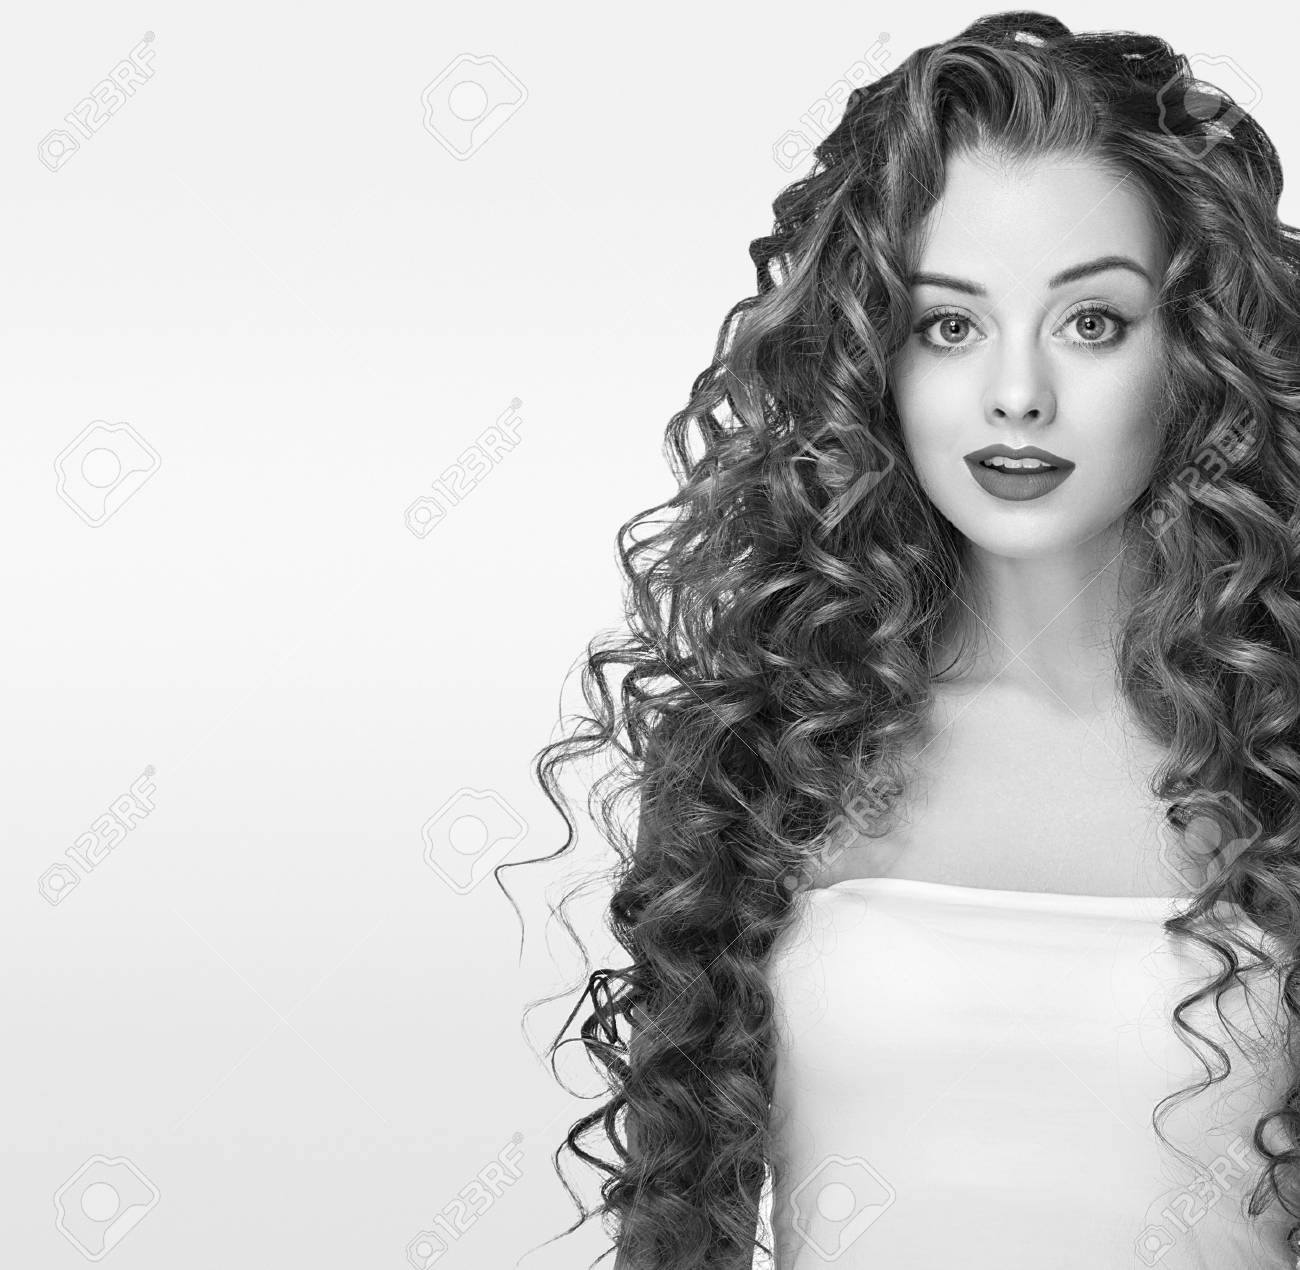 Beautiful People Woman Curly Hair Fashion Girl With Healthy